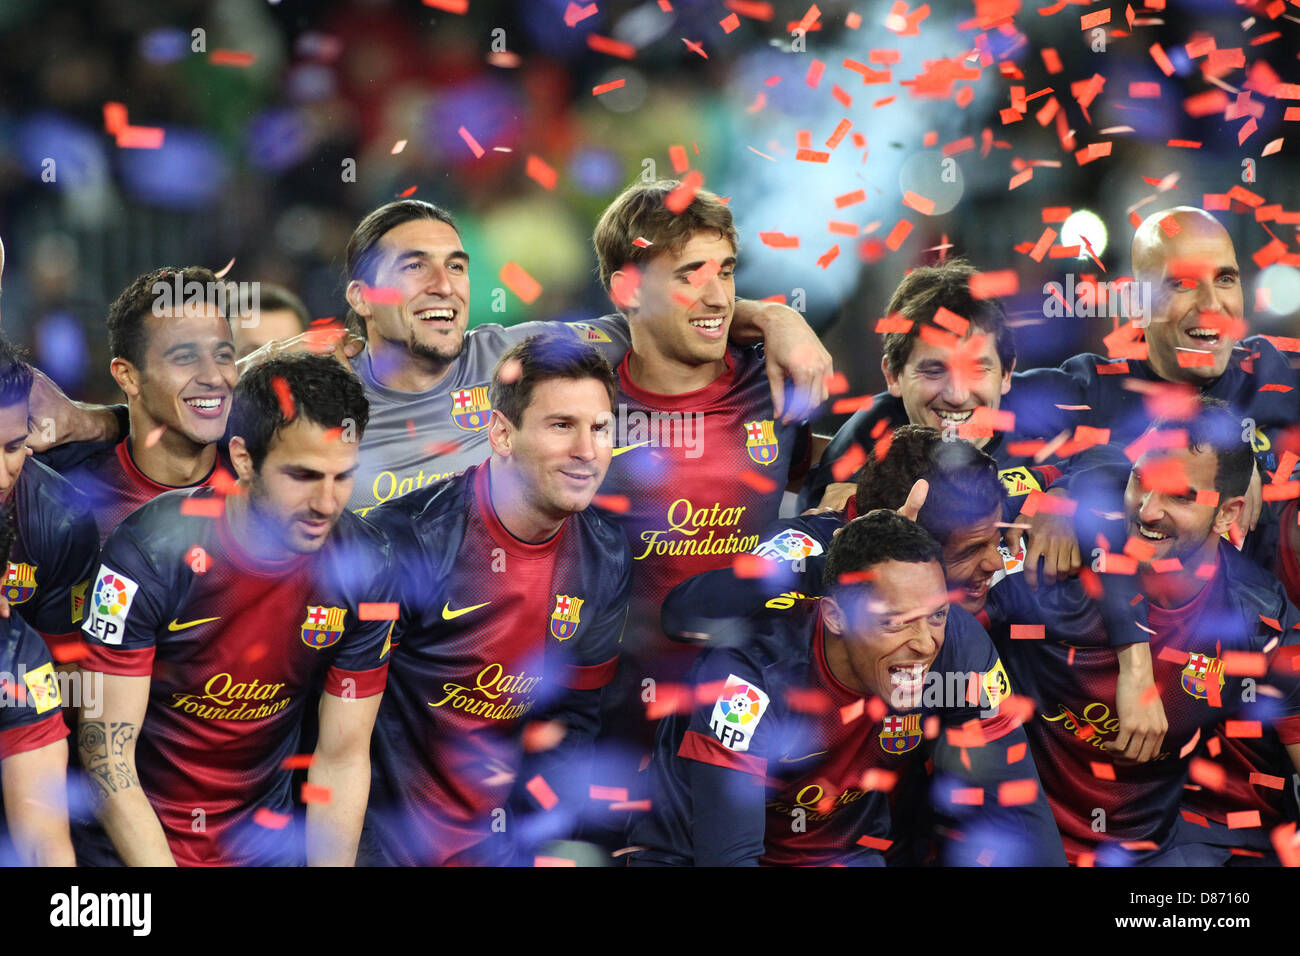 19.05.2013 Barcelona, Spain. Barcelona's players during the celebration of the league championship 2012/13 at - Stock Image